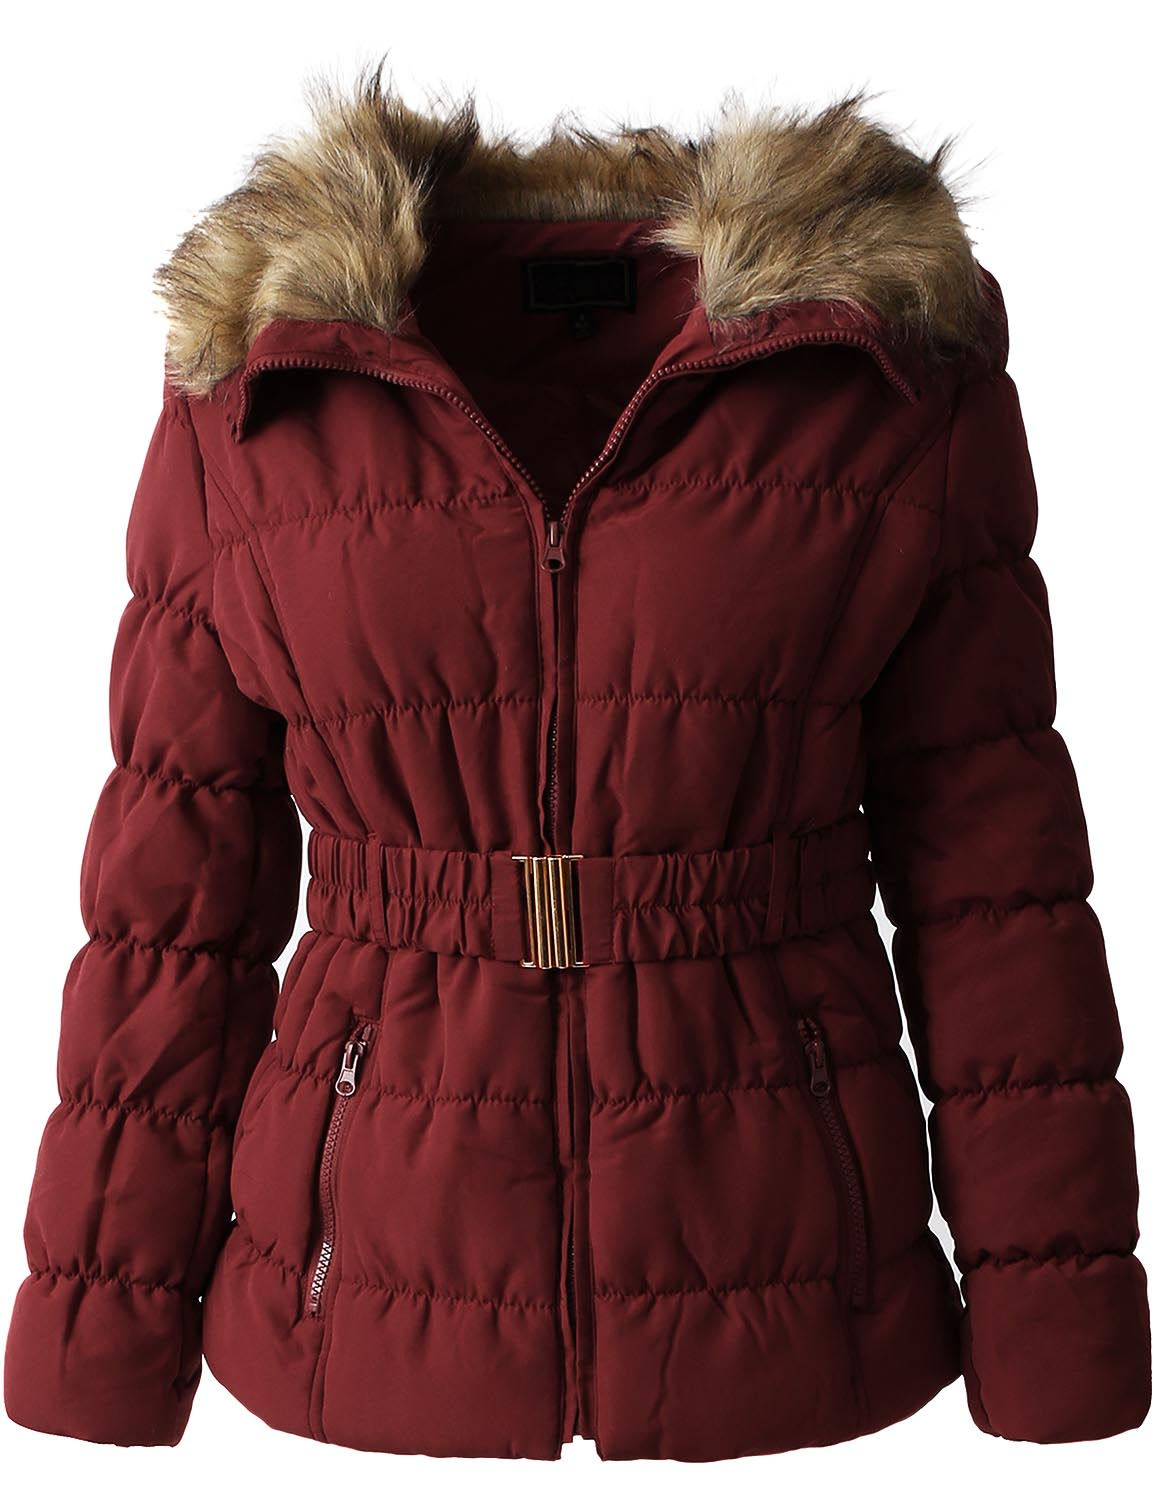 EC Womens FUR LINED COAT Belted Warm Parka Quilted Faux Fur Insulated Puffer Jacket... by